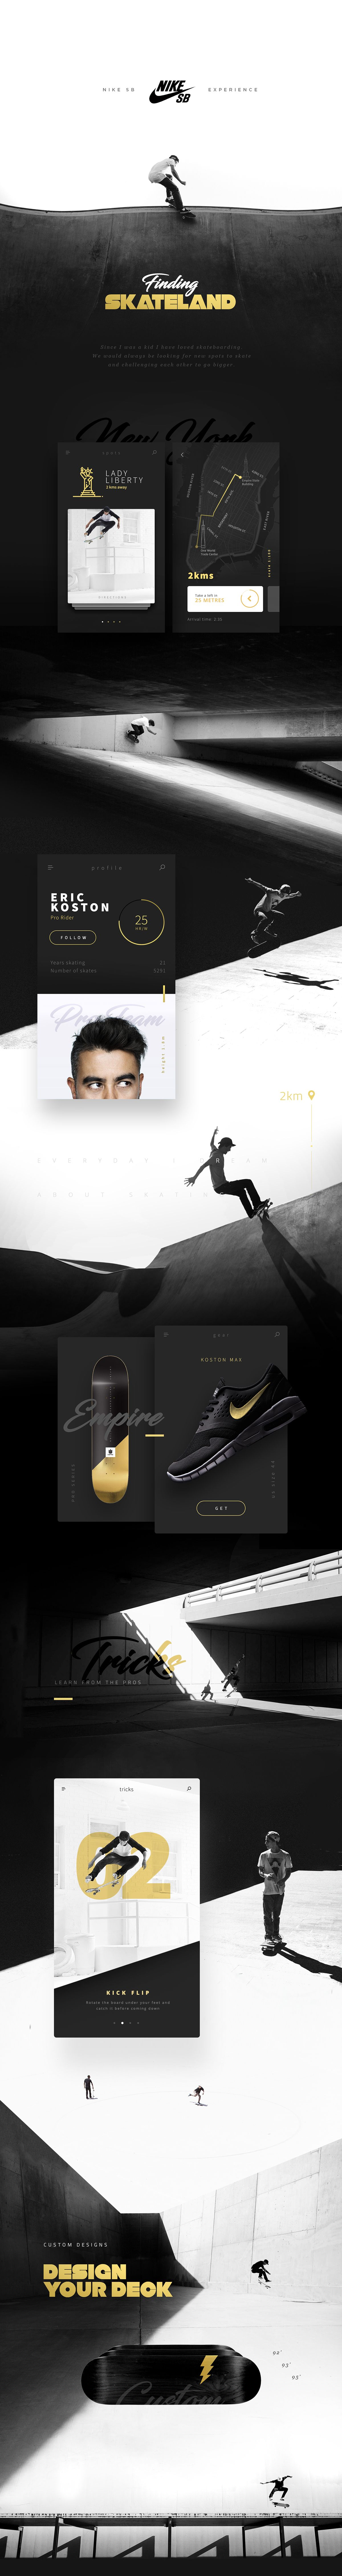 Stylish UI Design for Nike SB Concept Project